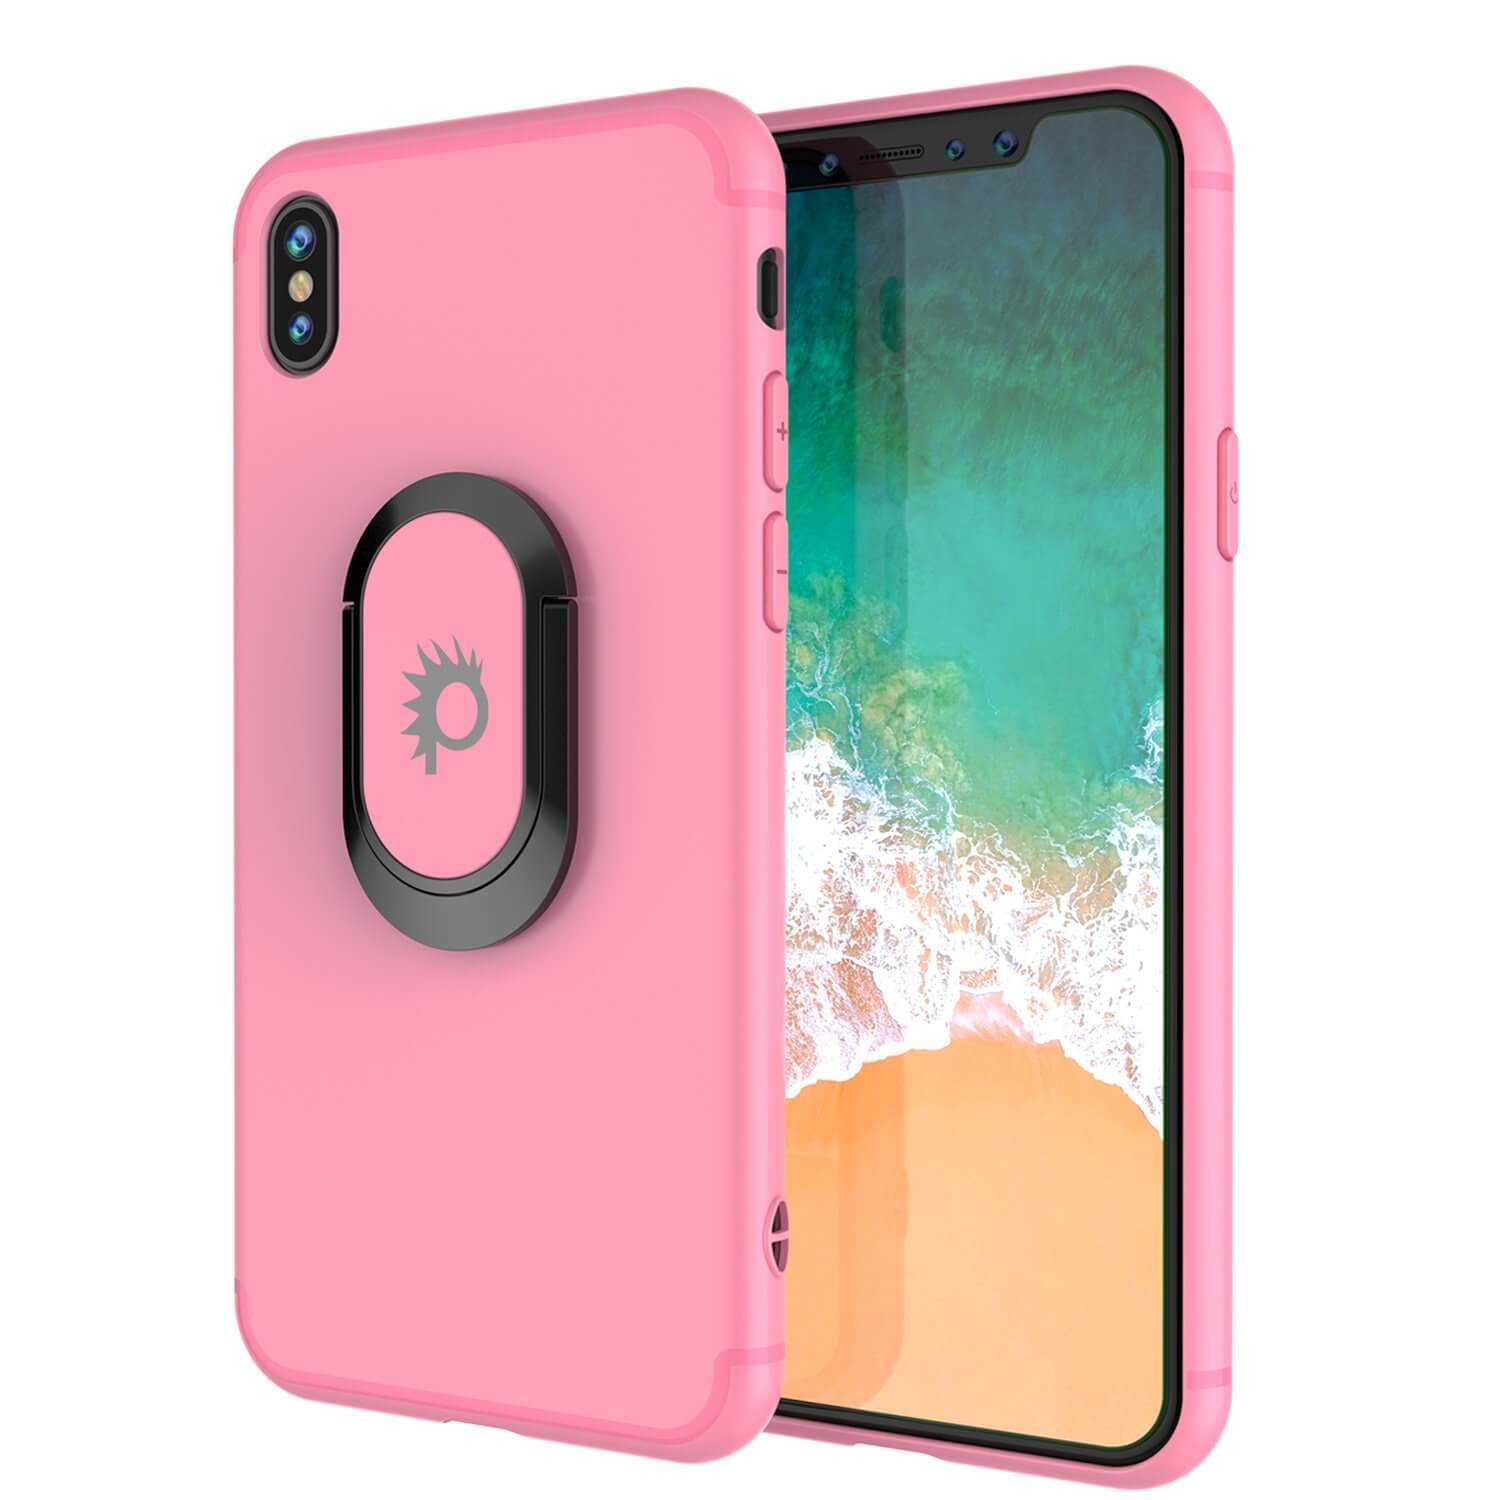 iPhone XS Max Case, Punkcase Magnetix Protective TPU Cover W/ Kickstand, Tempered Glass Screen Protector [Pink]